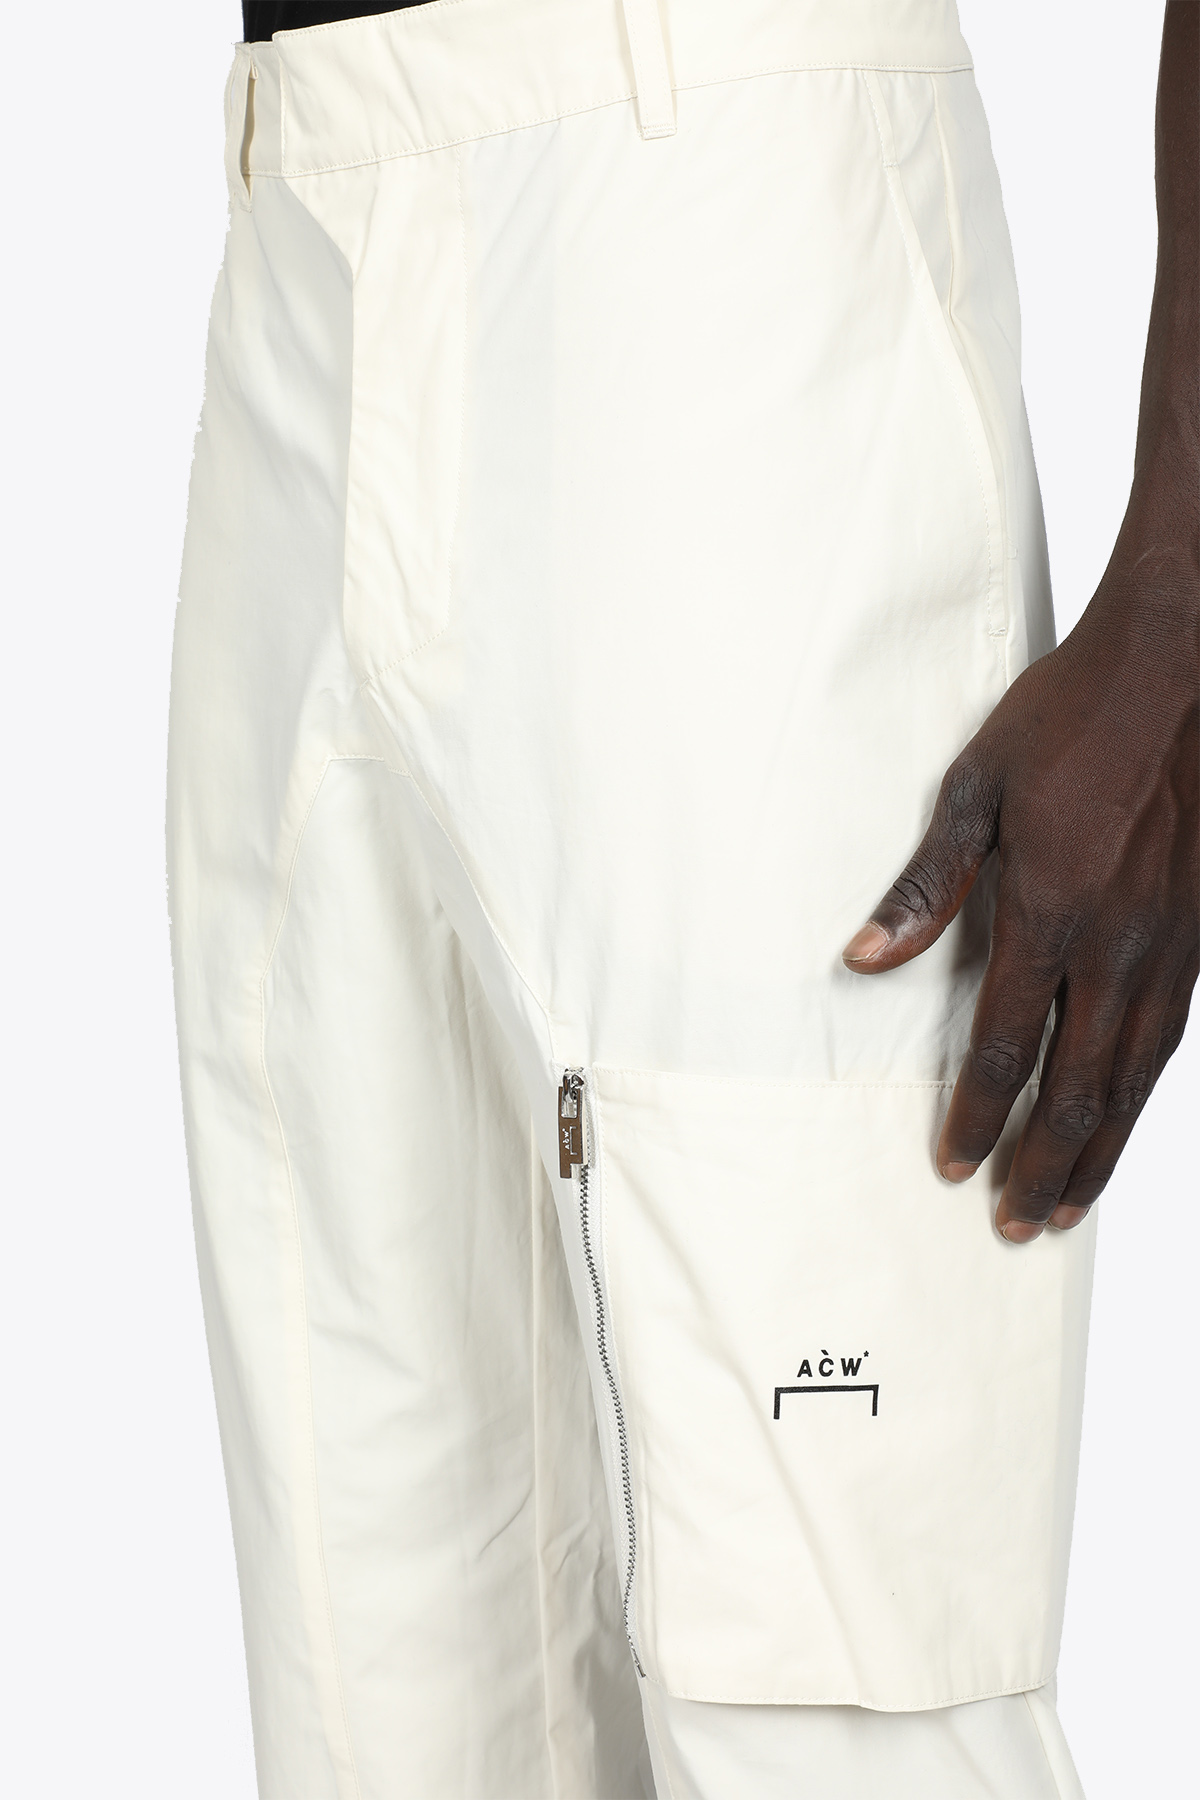 PANTALONE CARGO IN POPELINE PANNA A COLD WALL   9   ACWMB073WARM WHITE